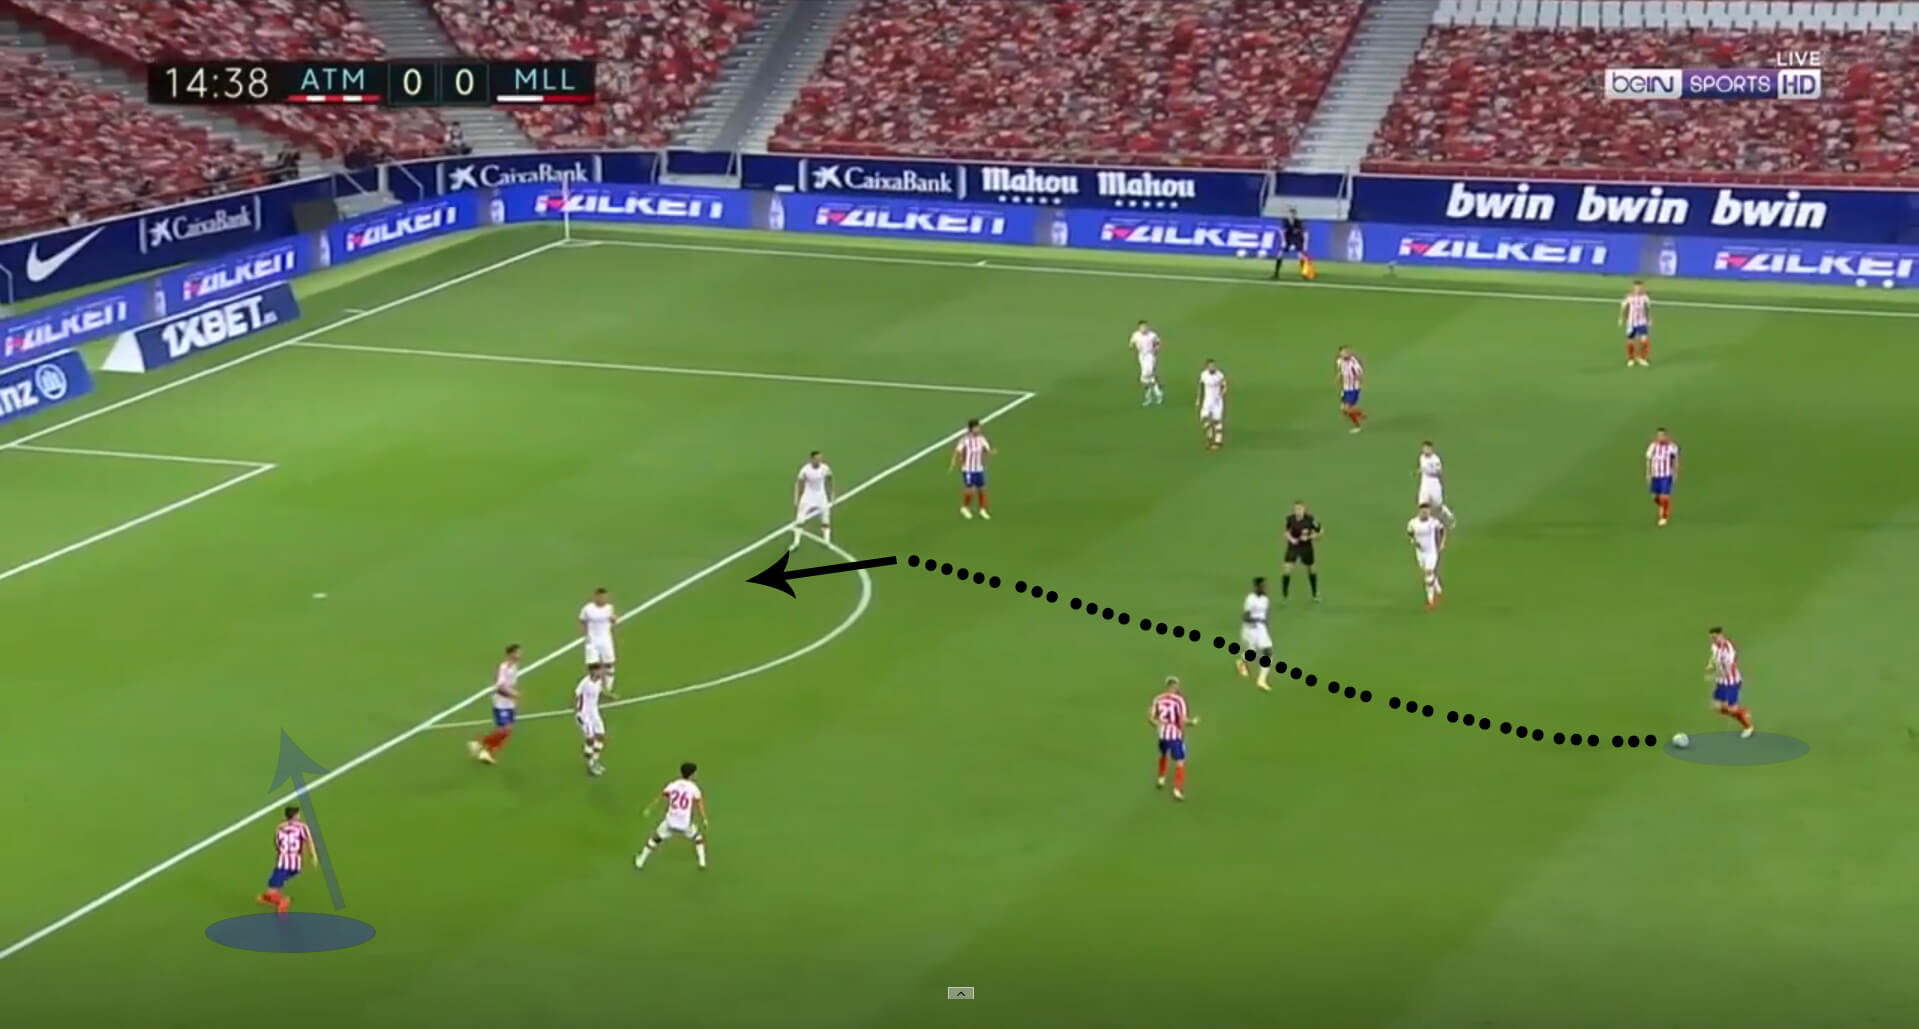 la-liga-2019-20-Atletico Madrid-vs-Real Mallorca-tactical-analysis-tactics